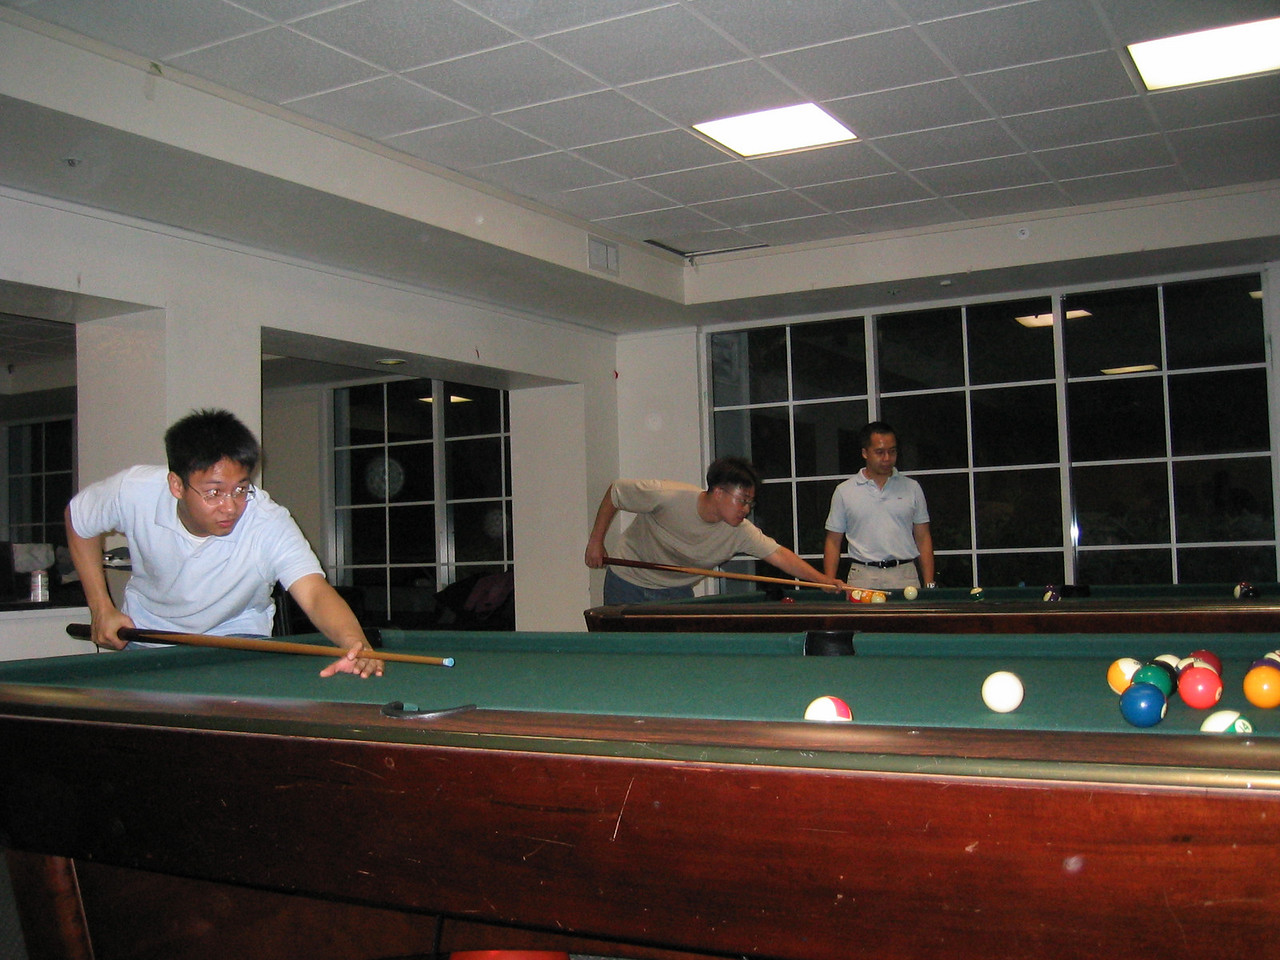 Syncronized pool shooting - Philip Pan & Steve Chang